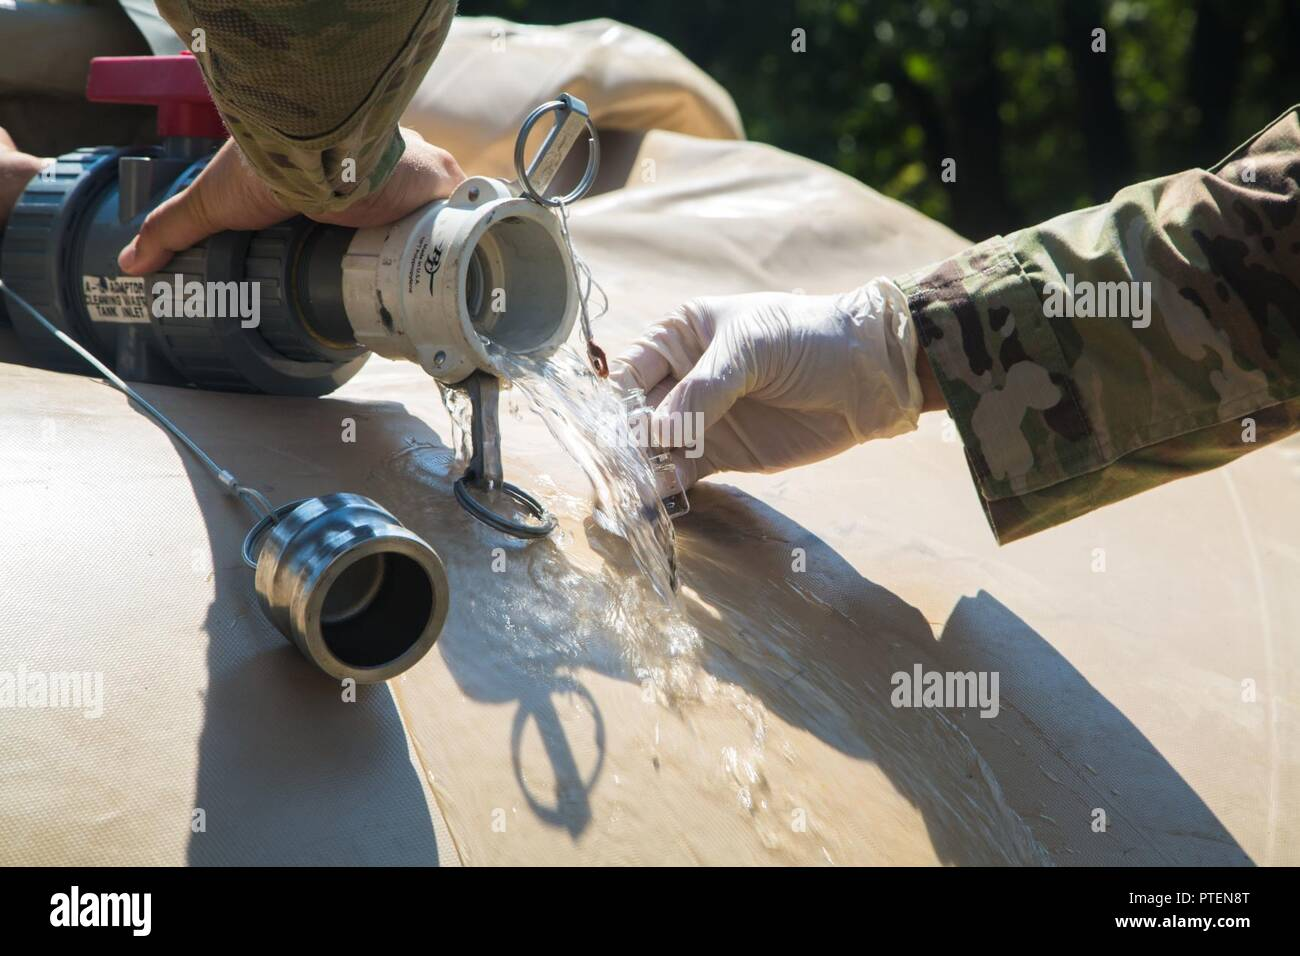 U.S. Army Sgt. Joshua Holtsberg, assigned 21st TSC (Theater Sutainment Command), 30th Medical Brigade, 421st MMB (Medical Multifunctional Battalion), 71st Medical Detachment, pours water into a test tube as part of a water inspection at Novo Selo, Bulgaria, July 15, 2017. Saber Guardian 17 is a multinational readiness exercise where 22 countries gather to build partnership and a stronger Europe. - Stock Image